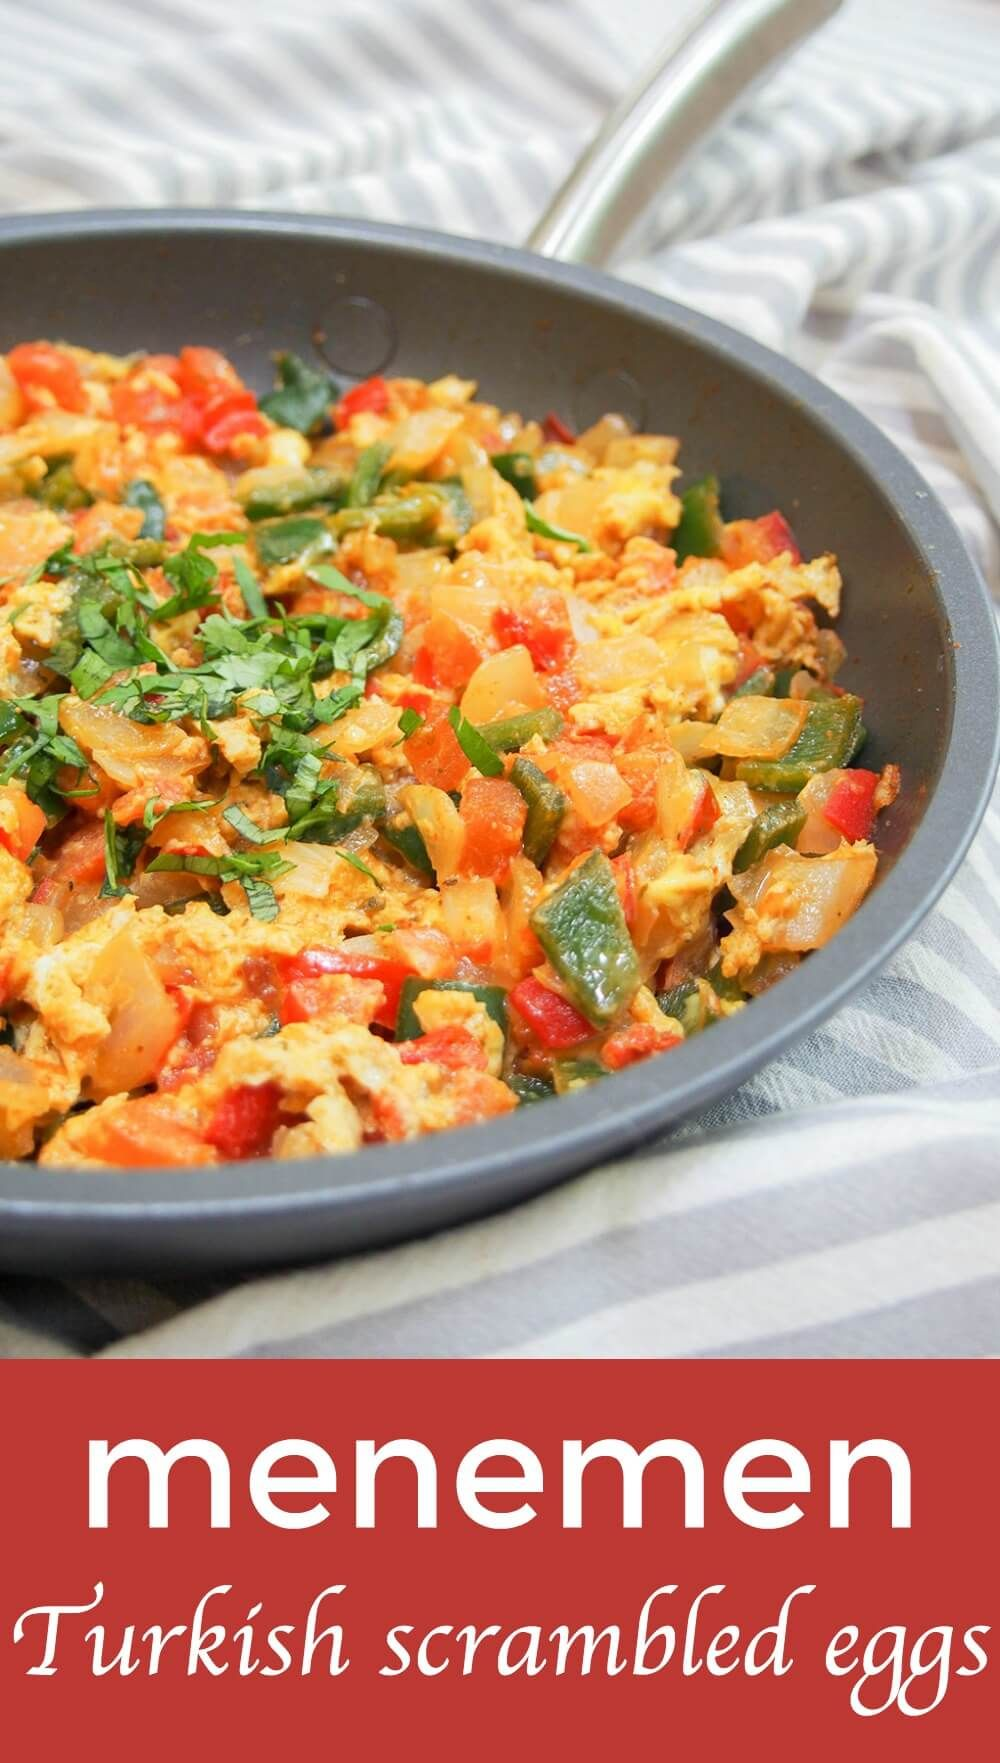 Menemen might not be a well known dish, but once you give it a try, it will soon be well-loved. It's similar to shakshuka, but this vegetable-packed scramble is worth getting to know in it's own right. Easy, with fresh but comforting flavors, it's perfect any meal of the day.